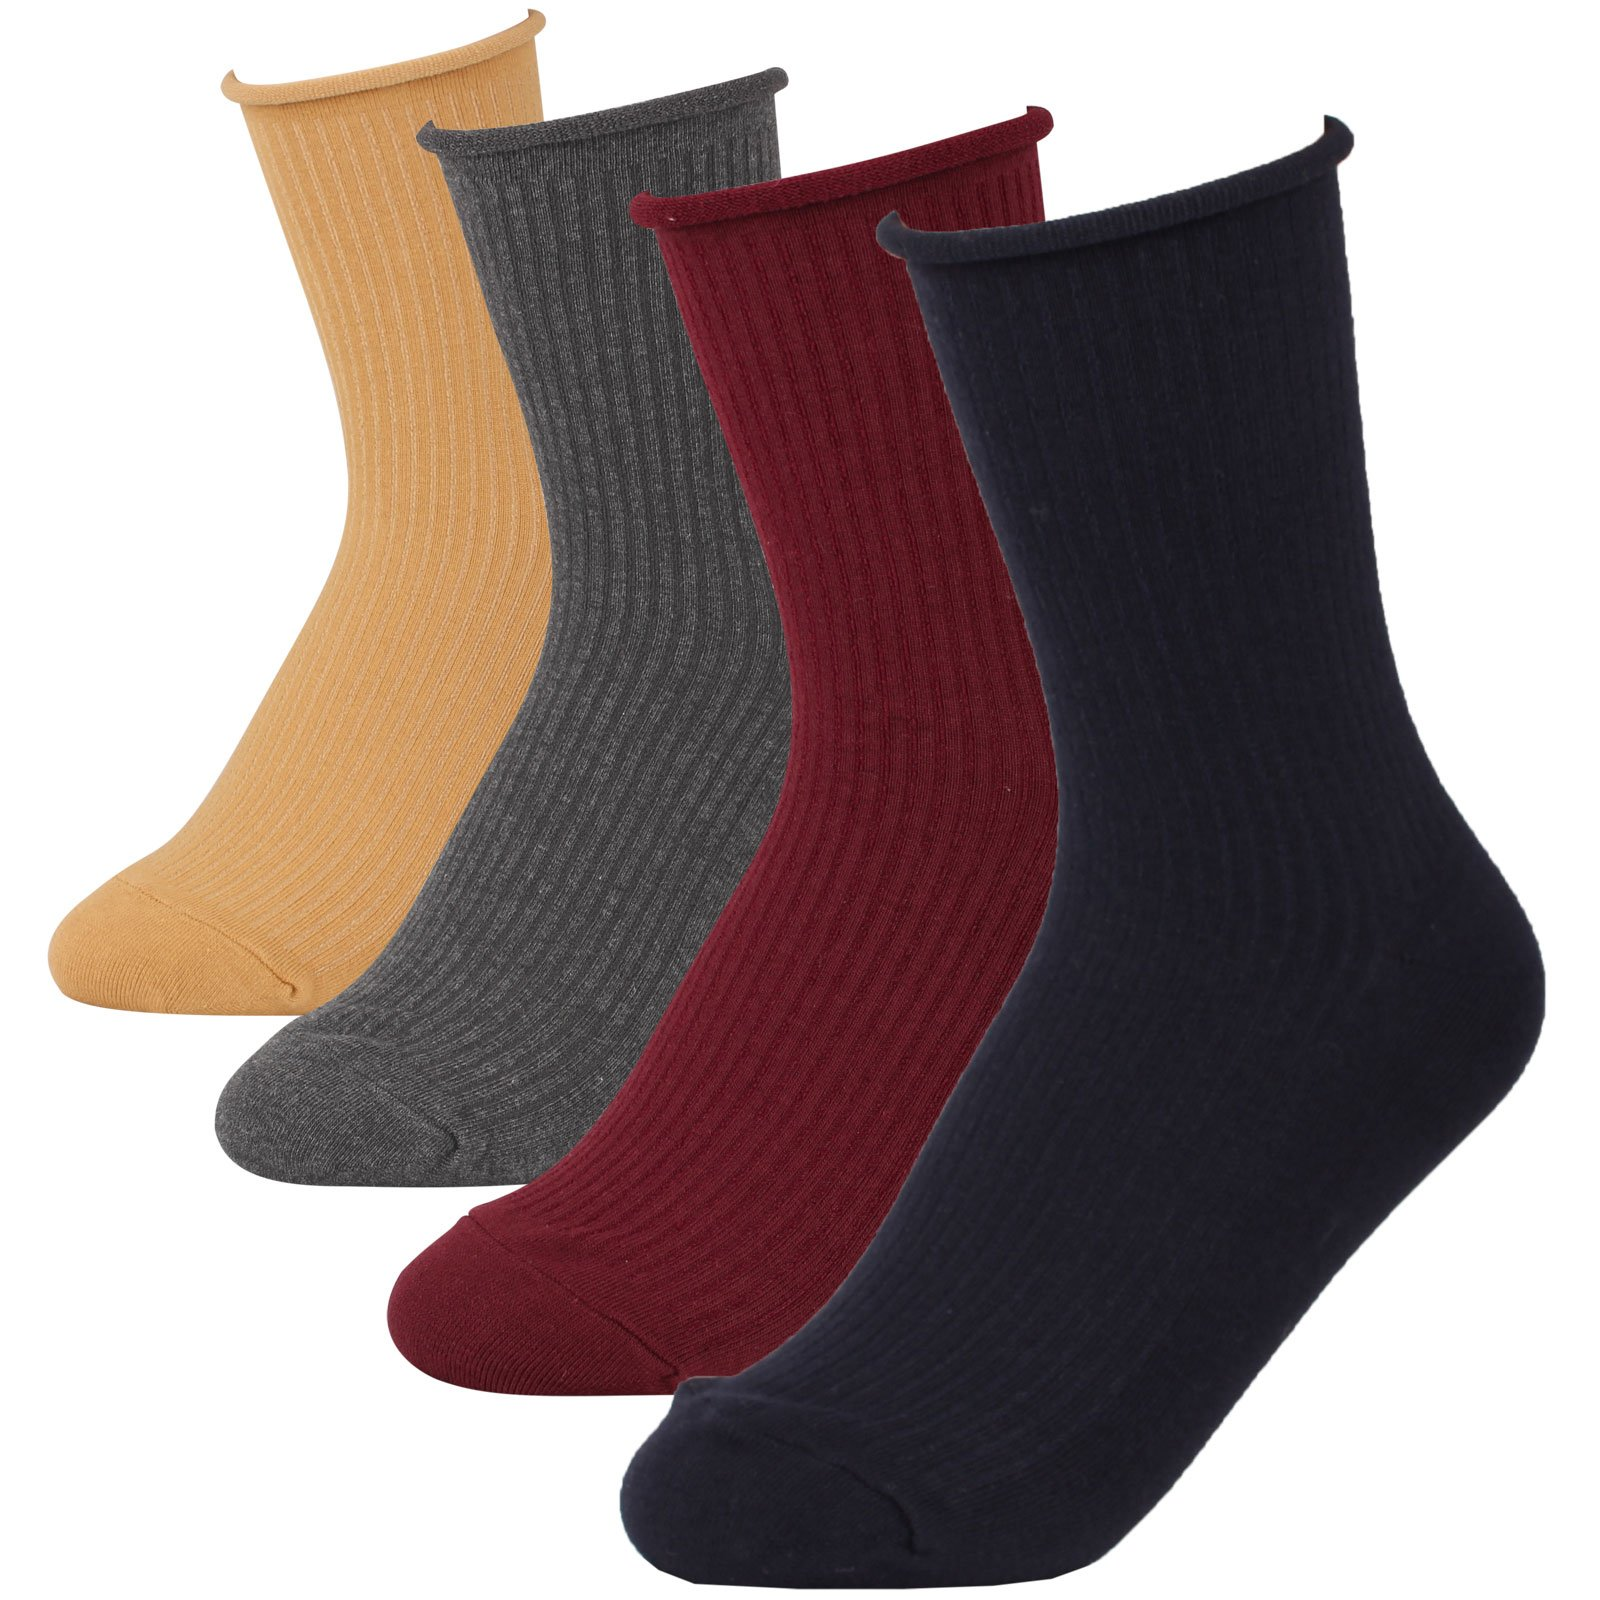 Women's Roll-Top Ankle High Soft Cotton Socks Lady Full Fashioned Girl Hosiery (D-2 Soft Ribbed Color-4pairs)